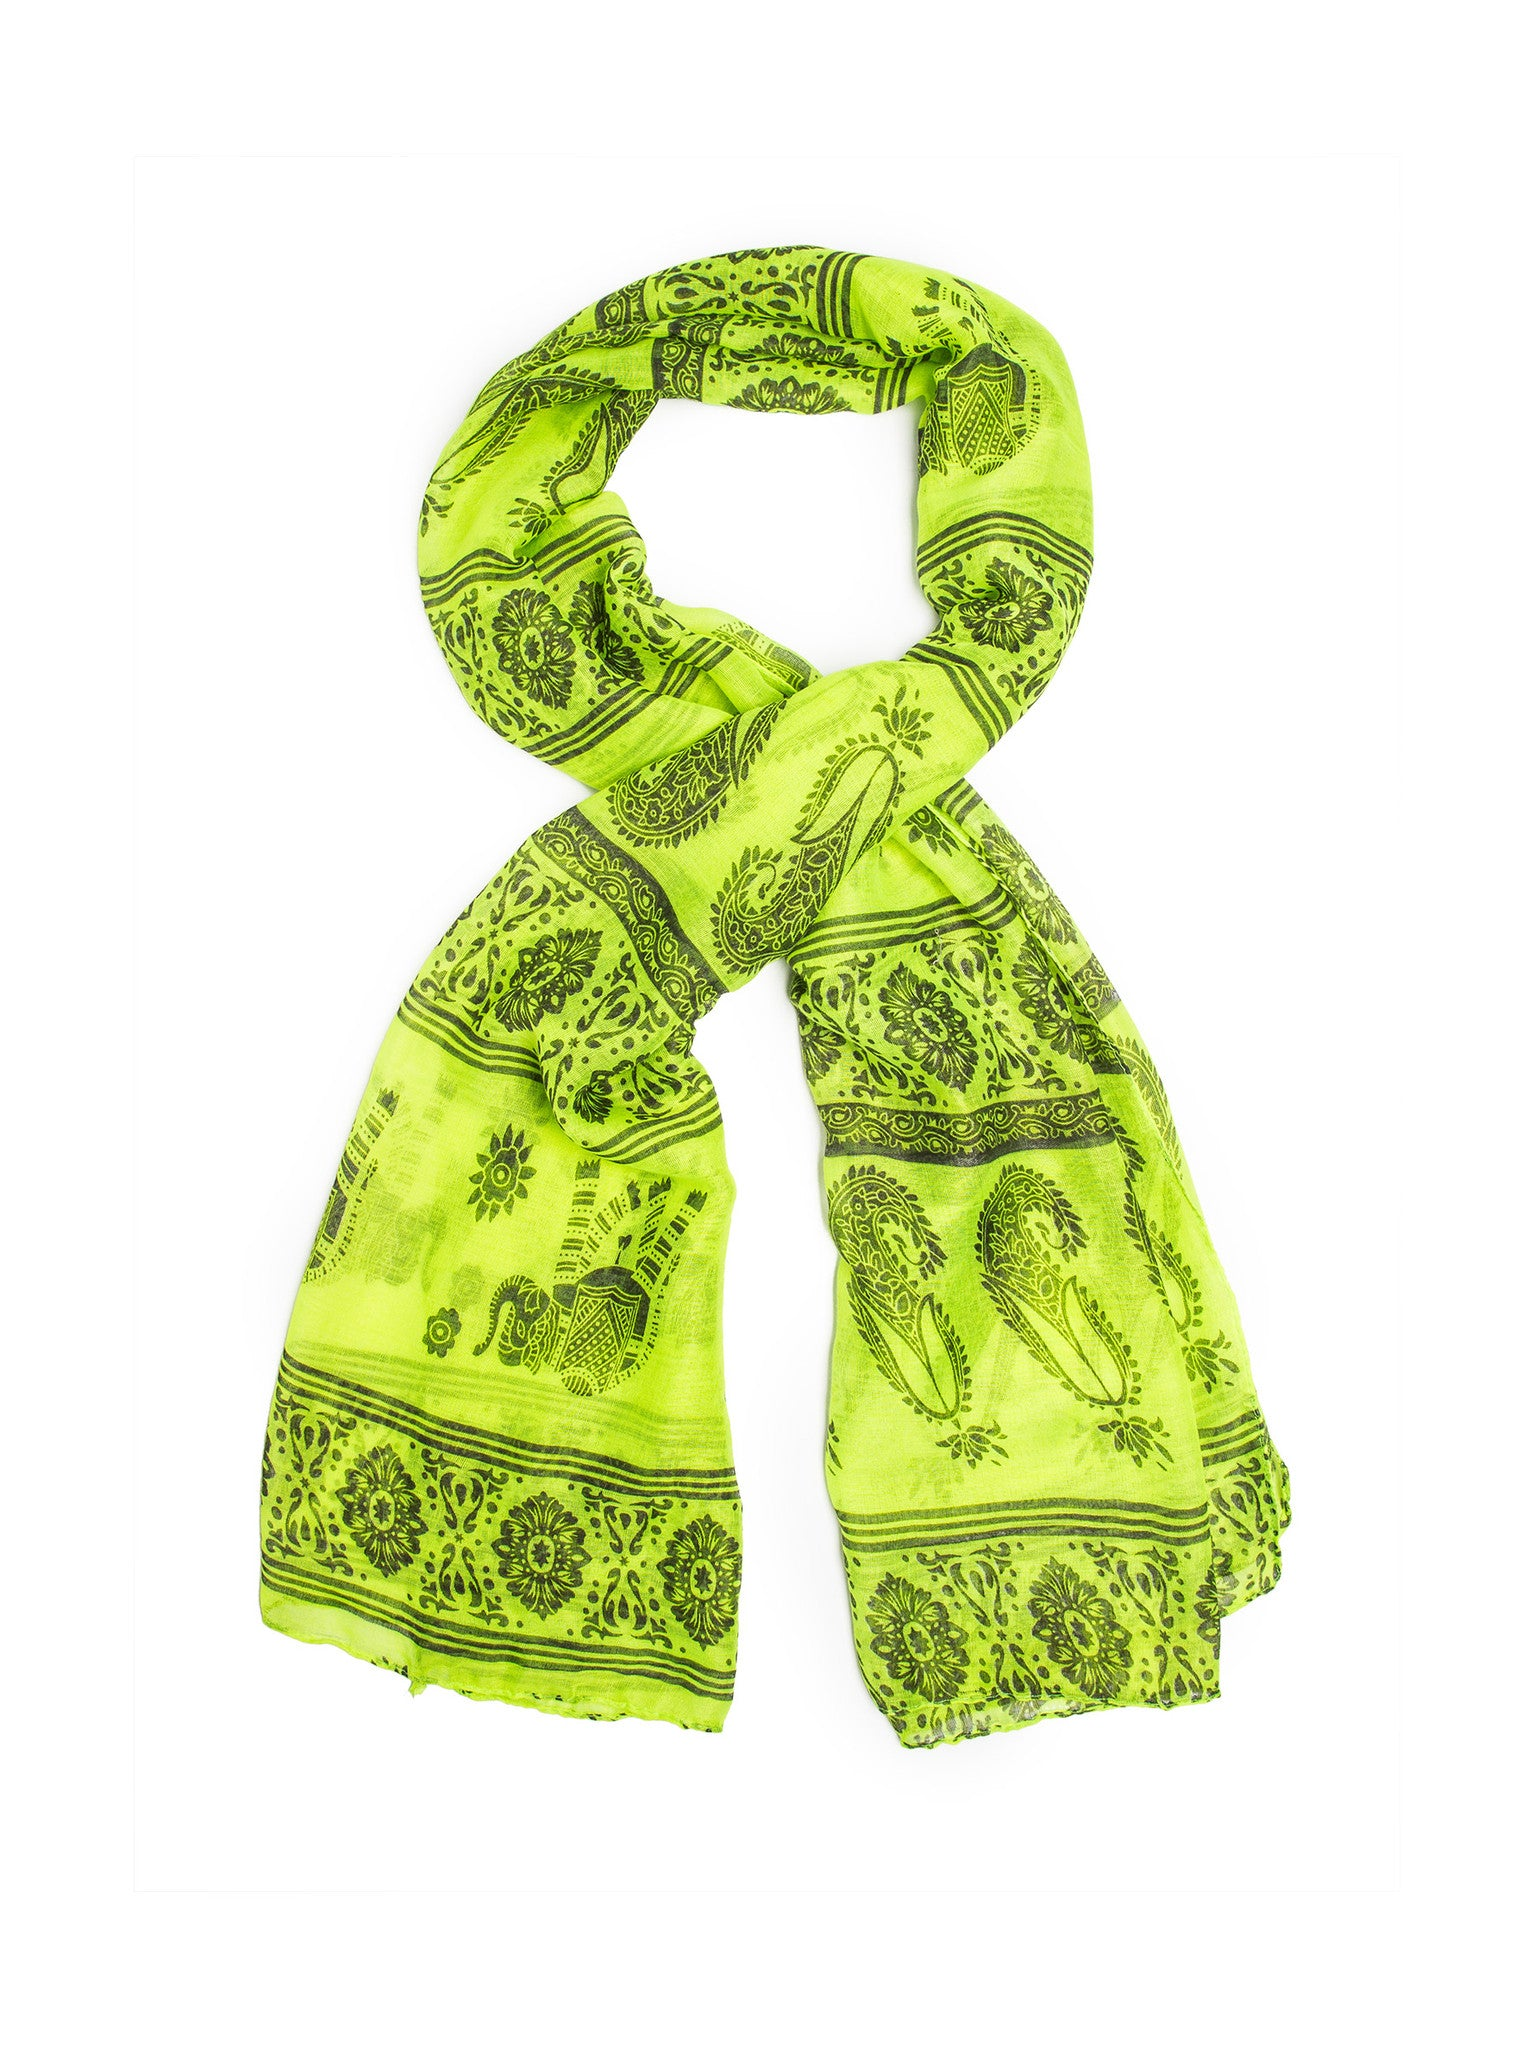 Scarves - Gaja Shawl, Paisley Indian Elephant Print Scarf, Shawl, Beach Wrap -(Lime/Gray / One Size) Bohomonde  - 4